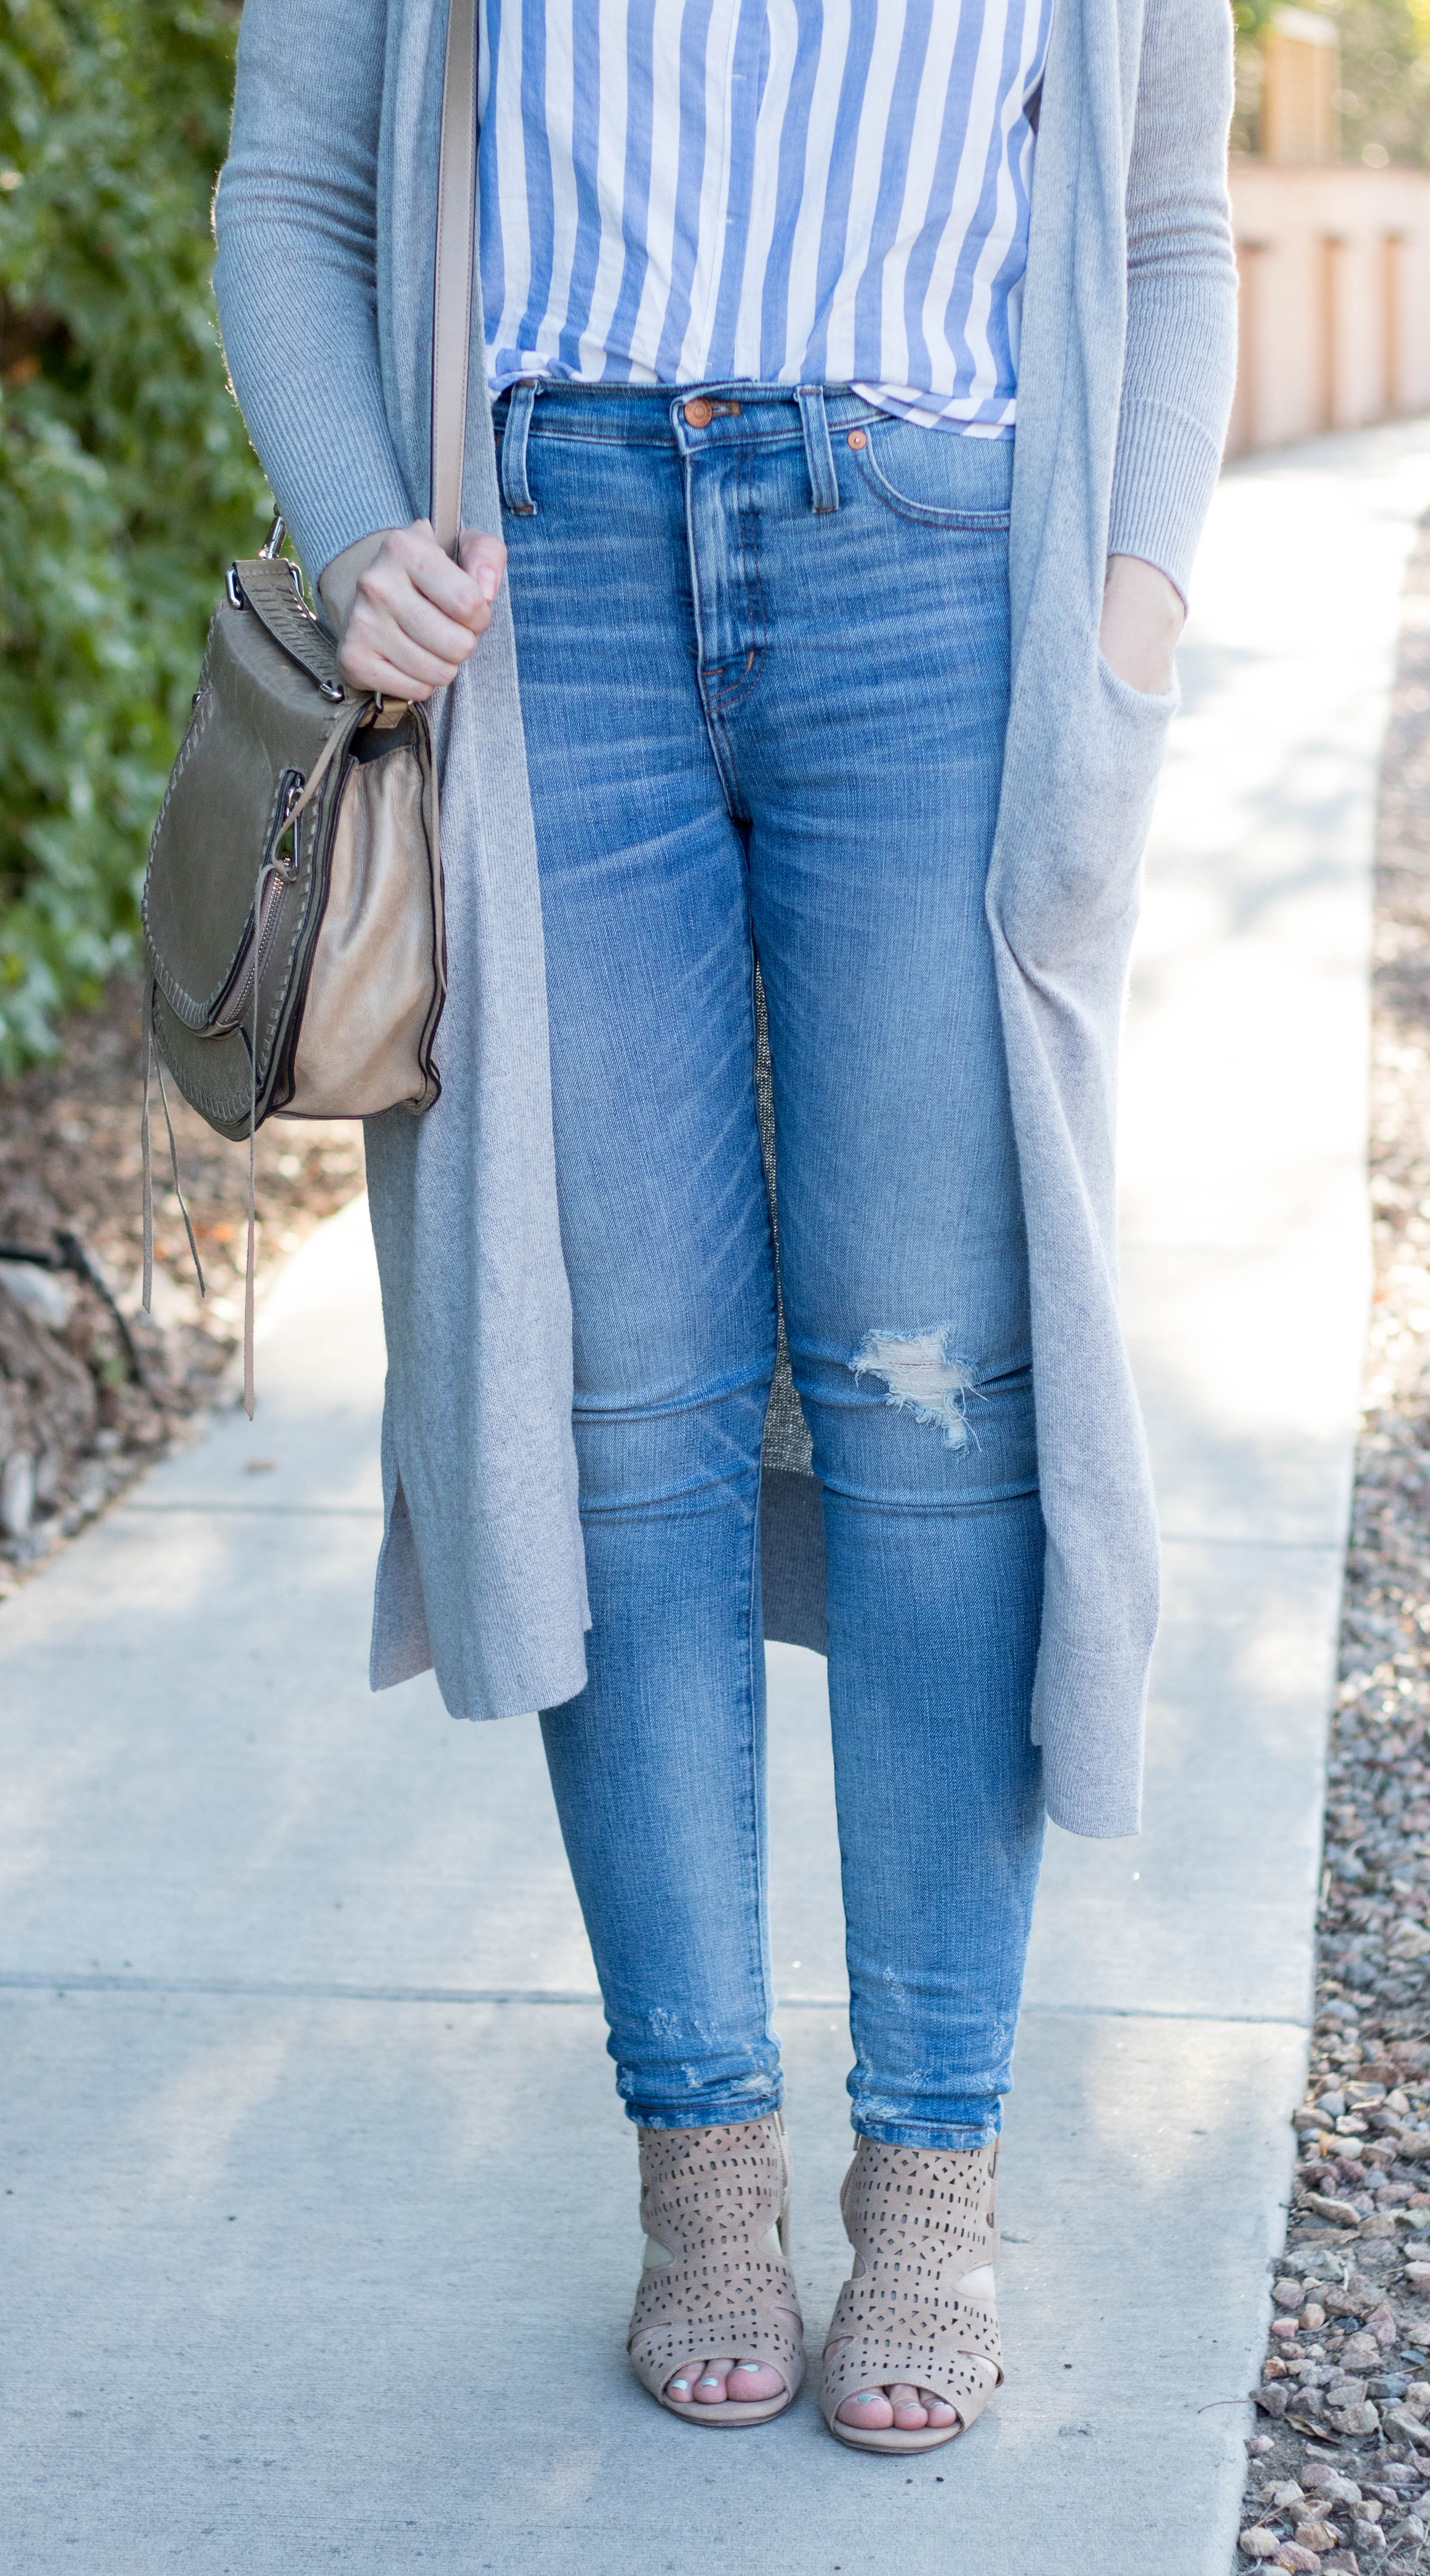 madewell high rise skinny Jeans #madewell #everydaymadewell #tallfashion #jeans